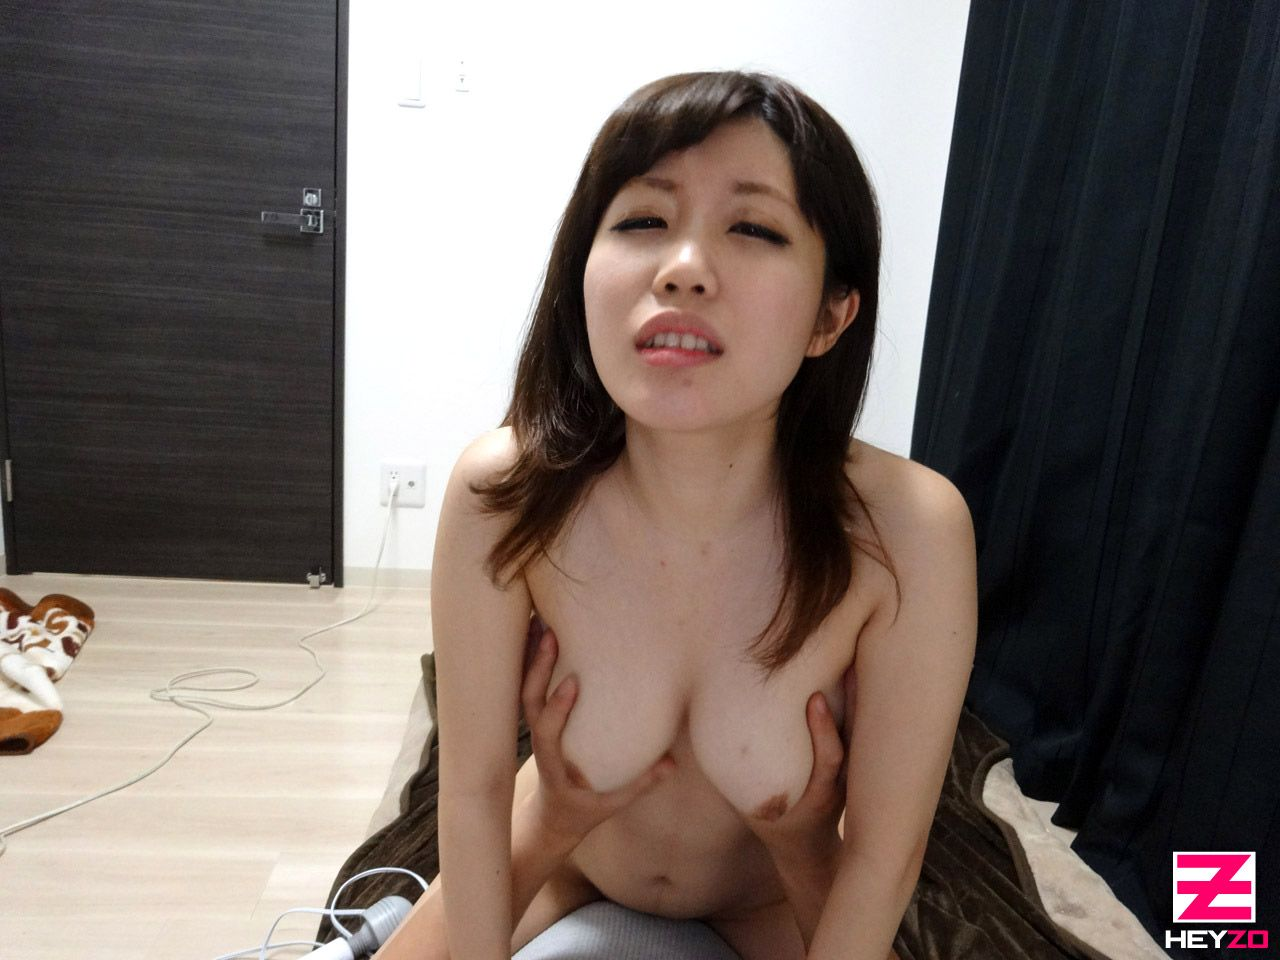 Black cock and analhole fucking